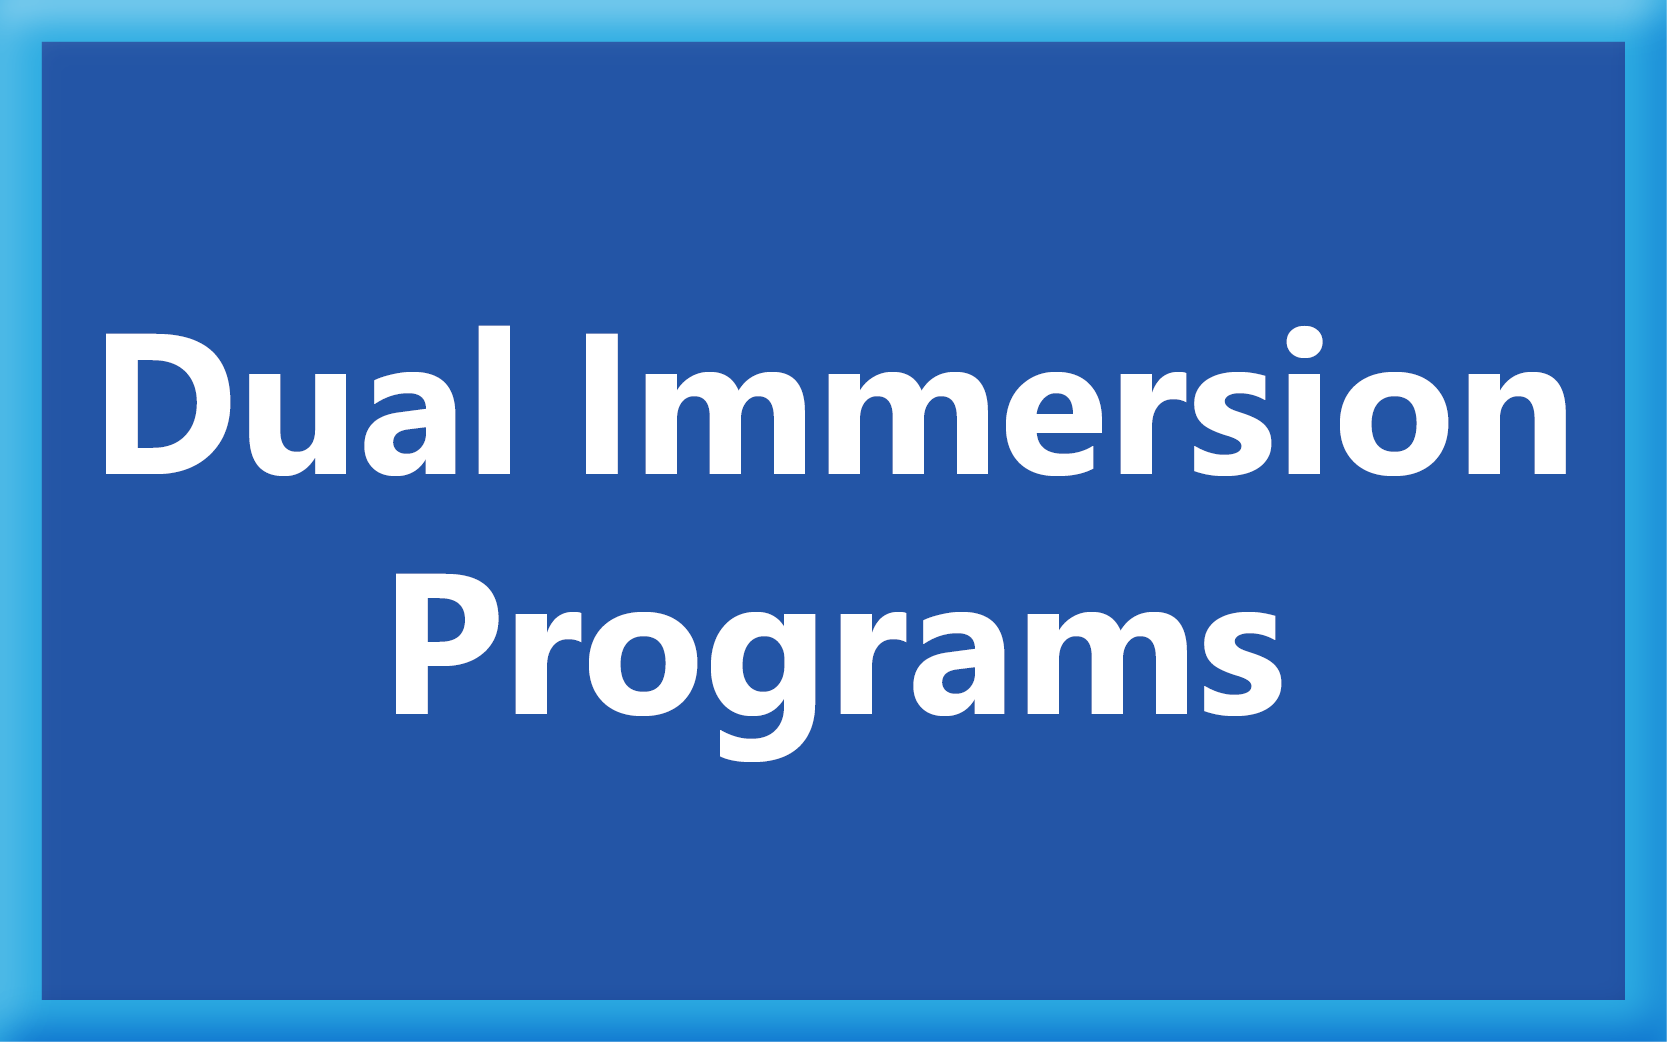 Dual Immersion Programs